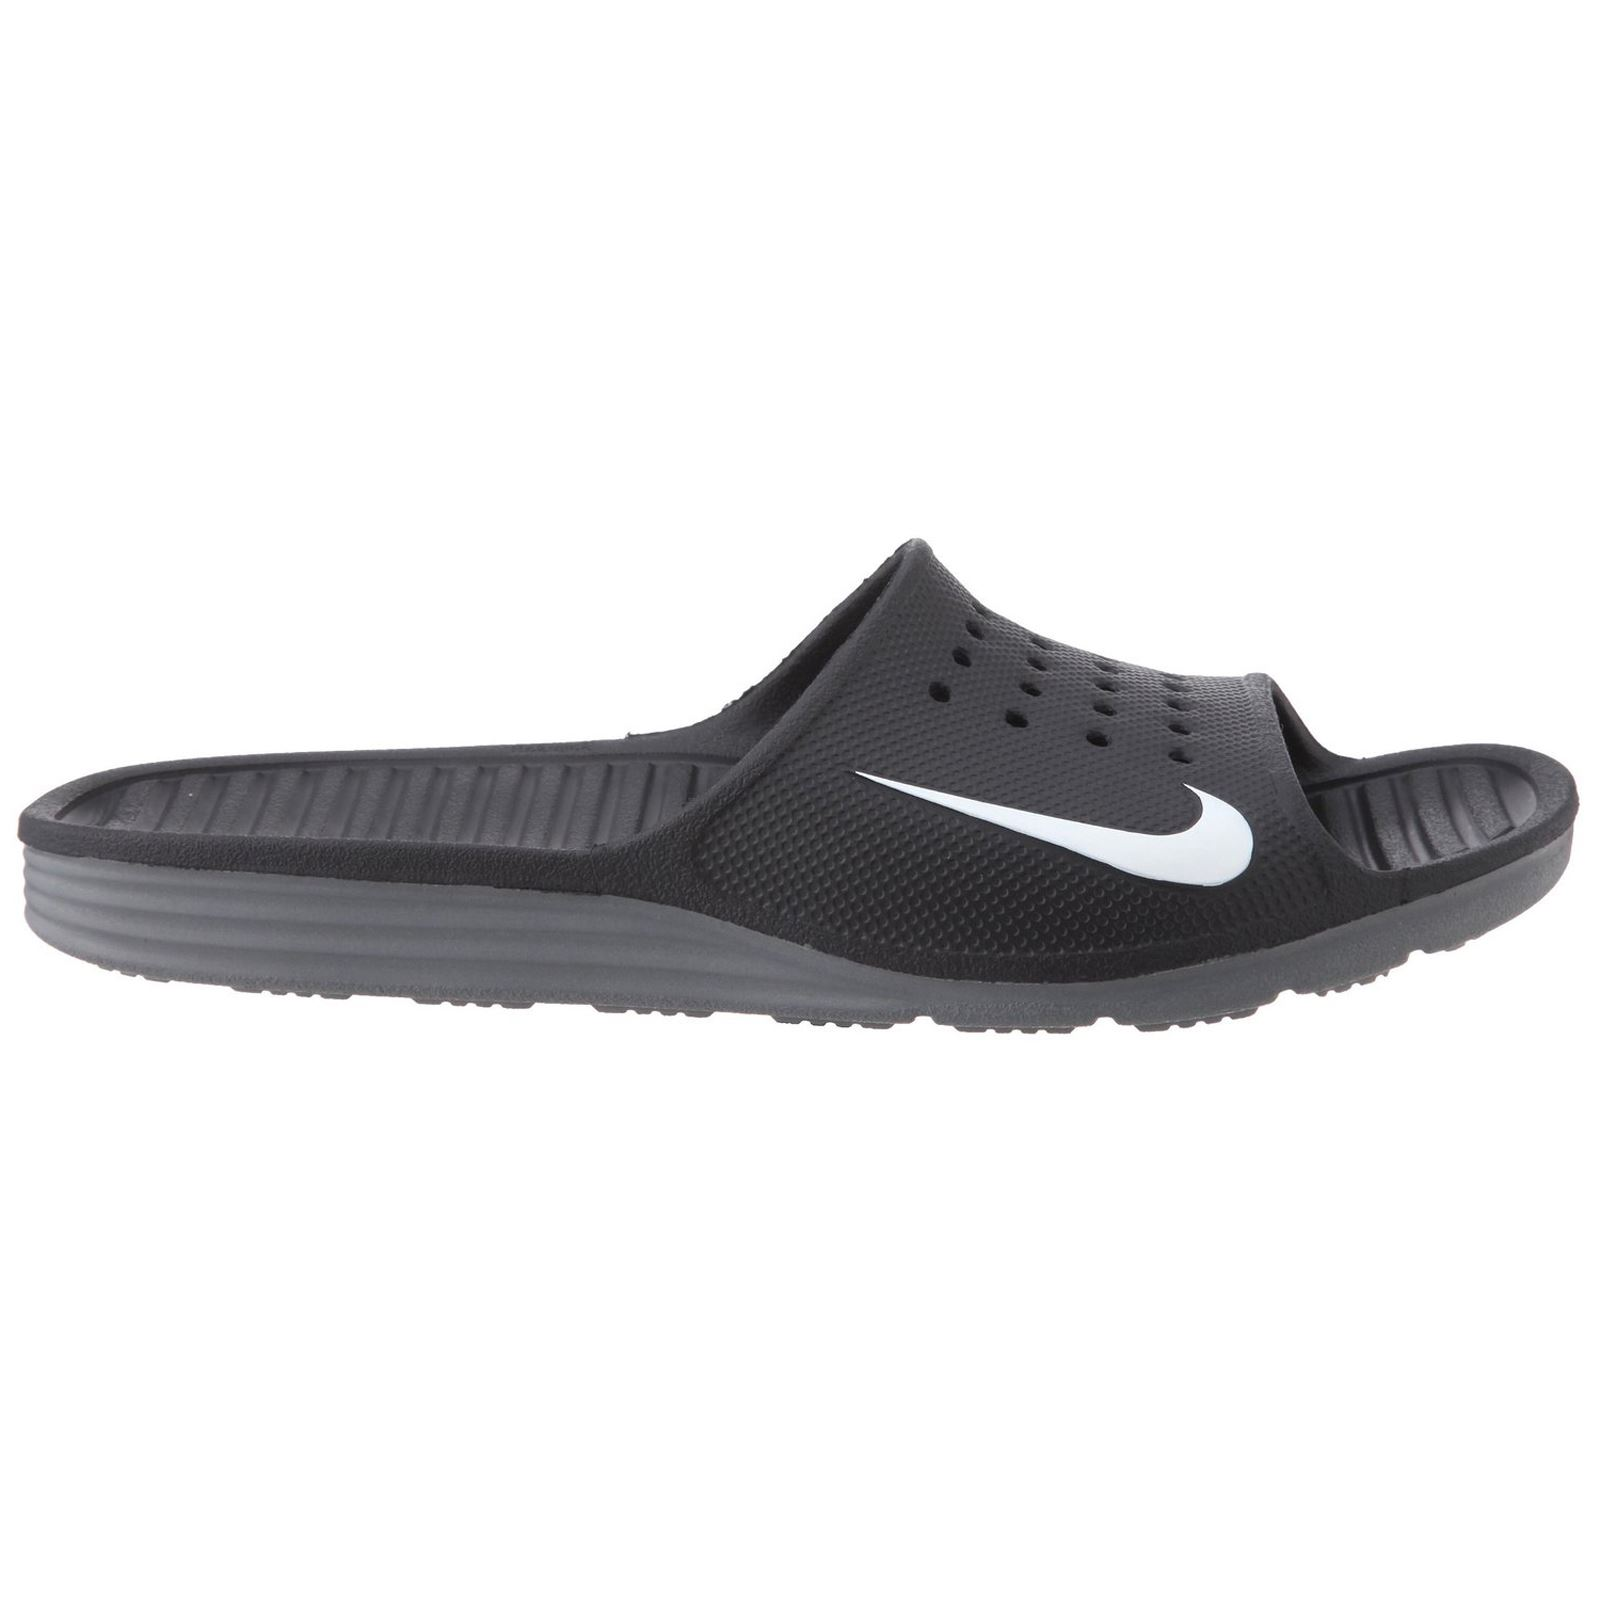 Nike Solarsoft Slide Mens Sandals Ebay